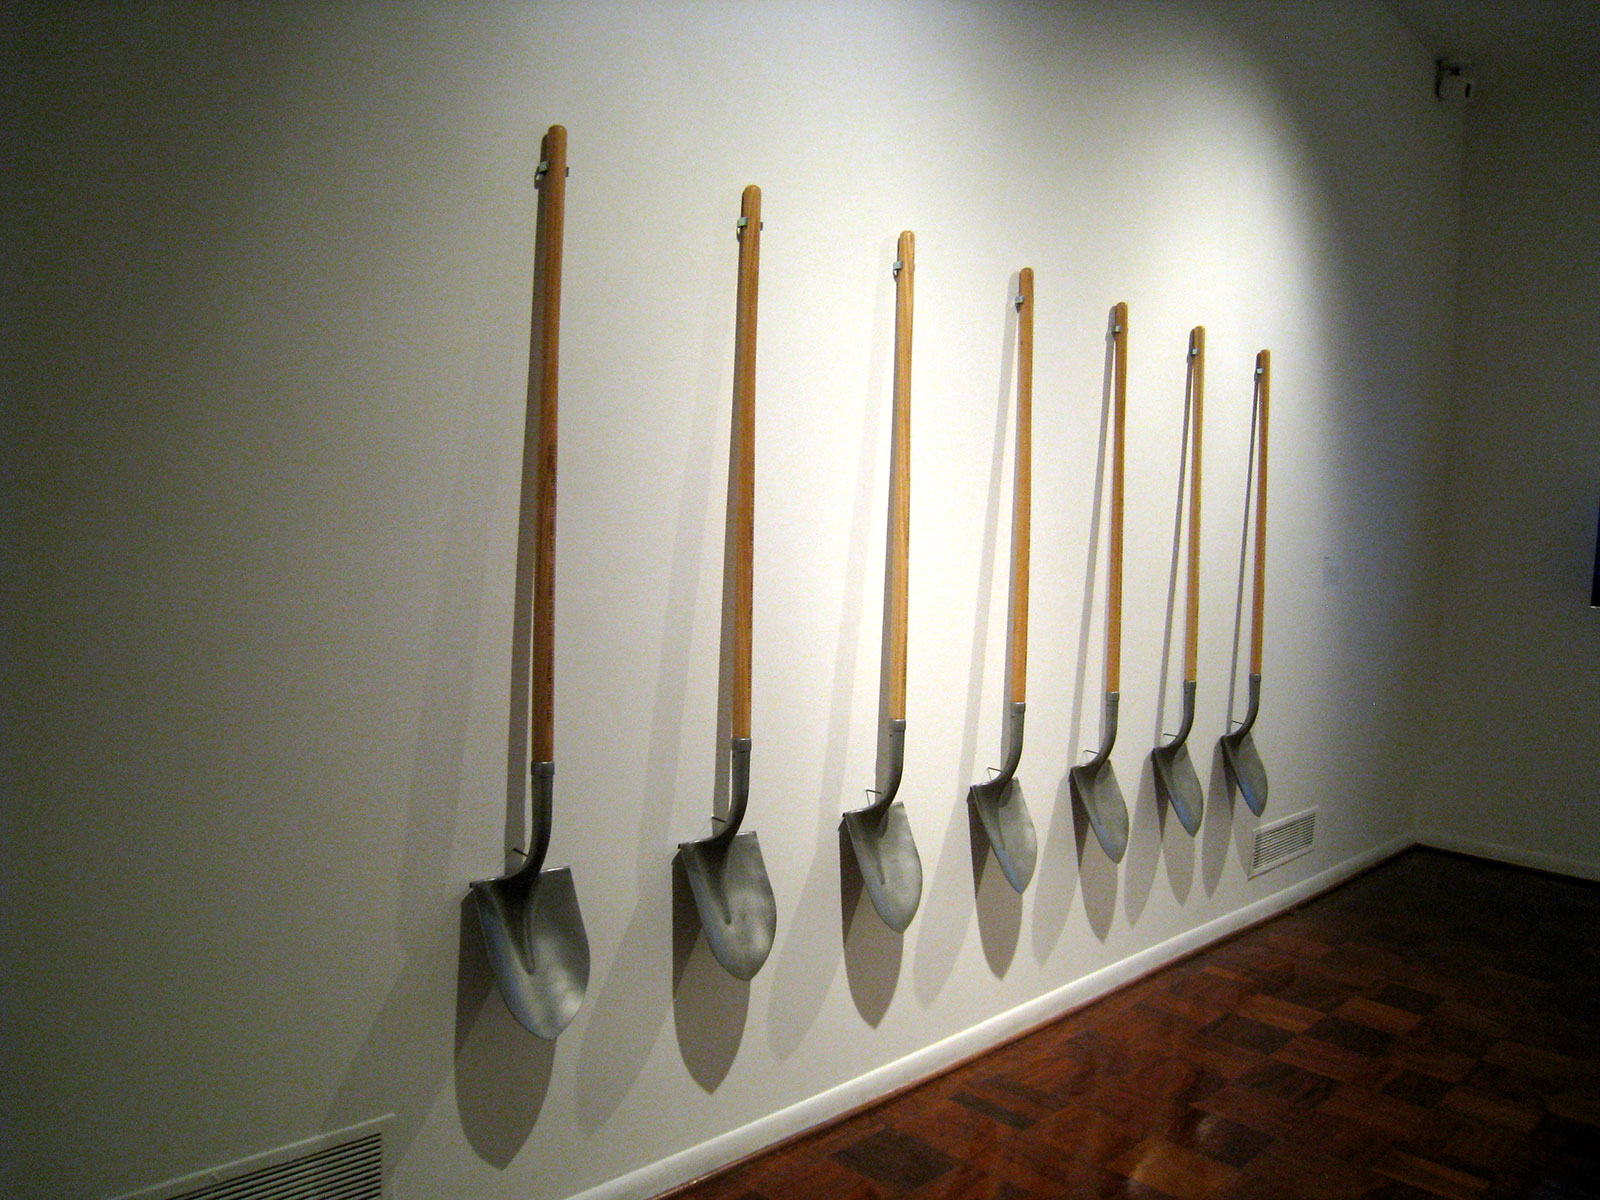 shovels hanging on a wall